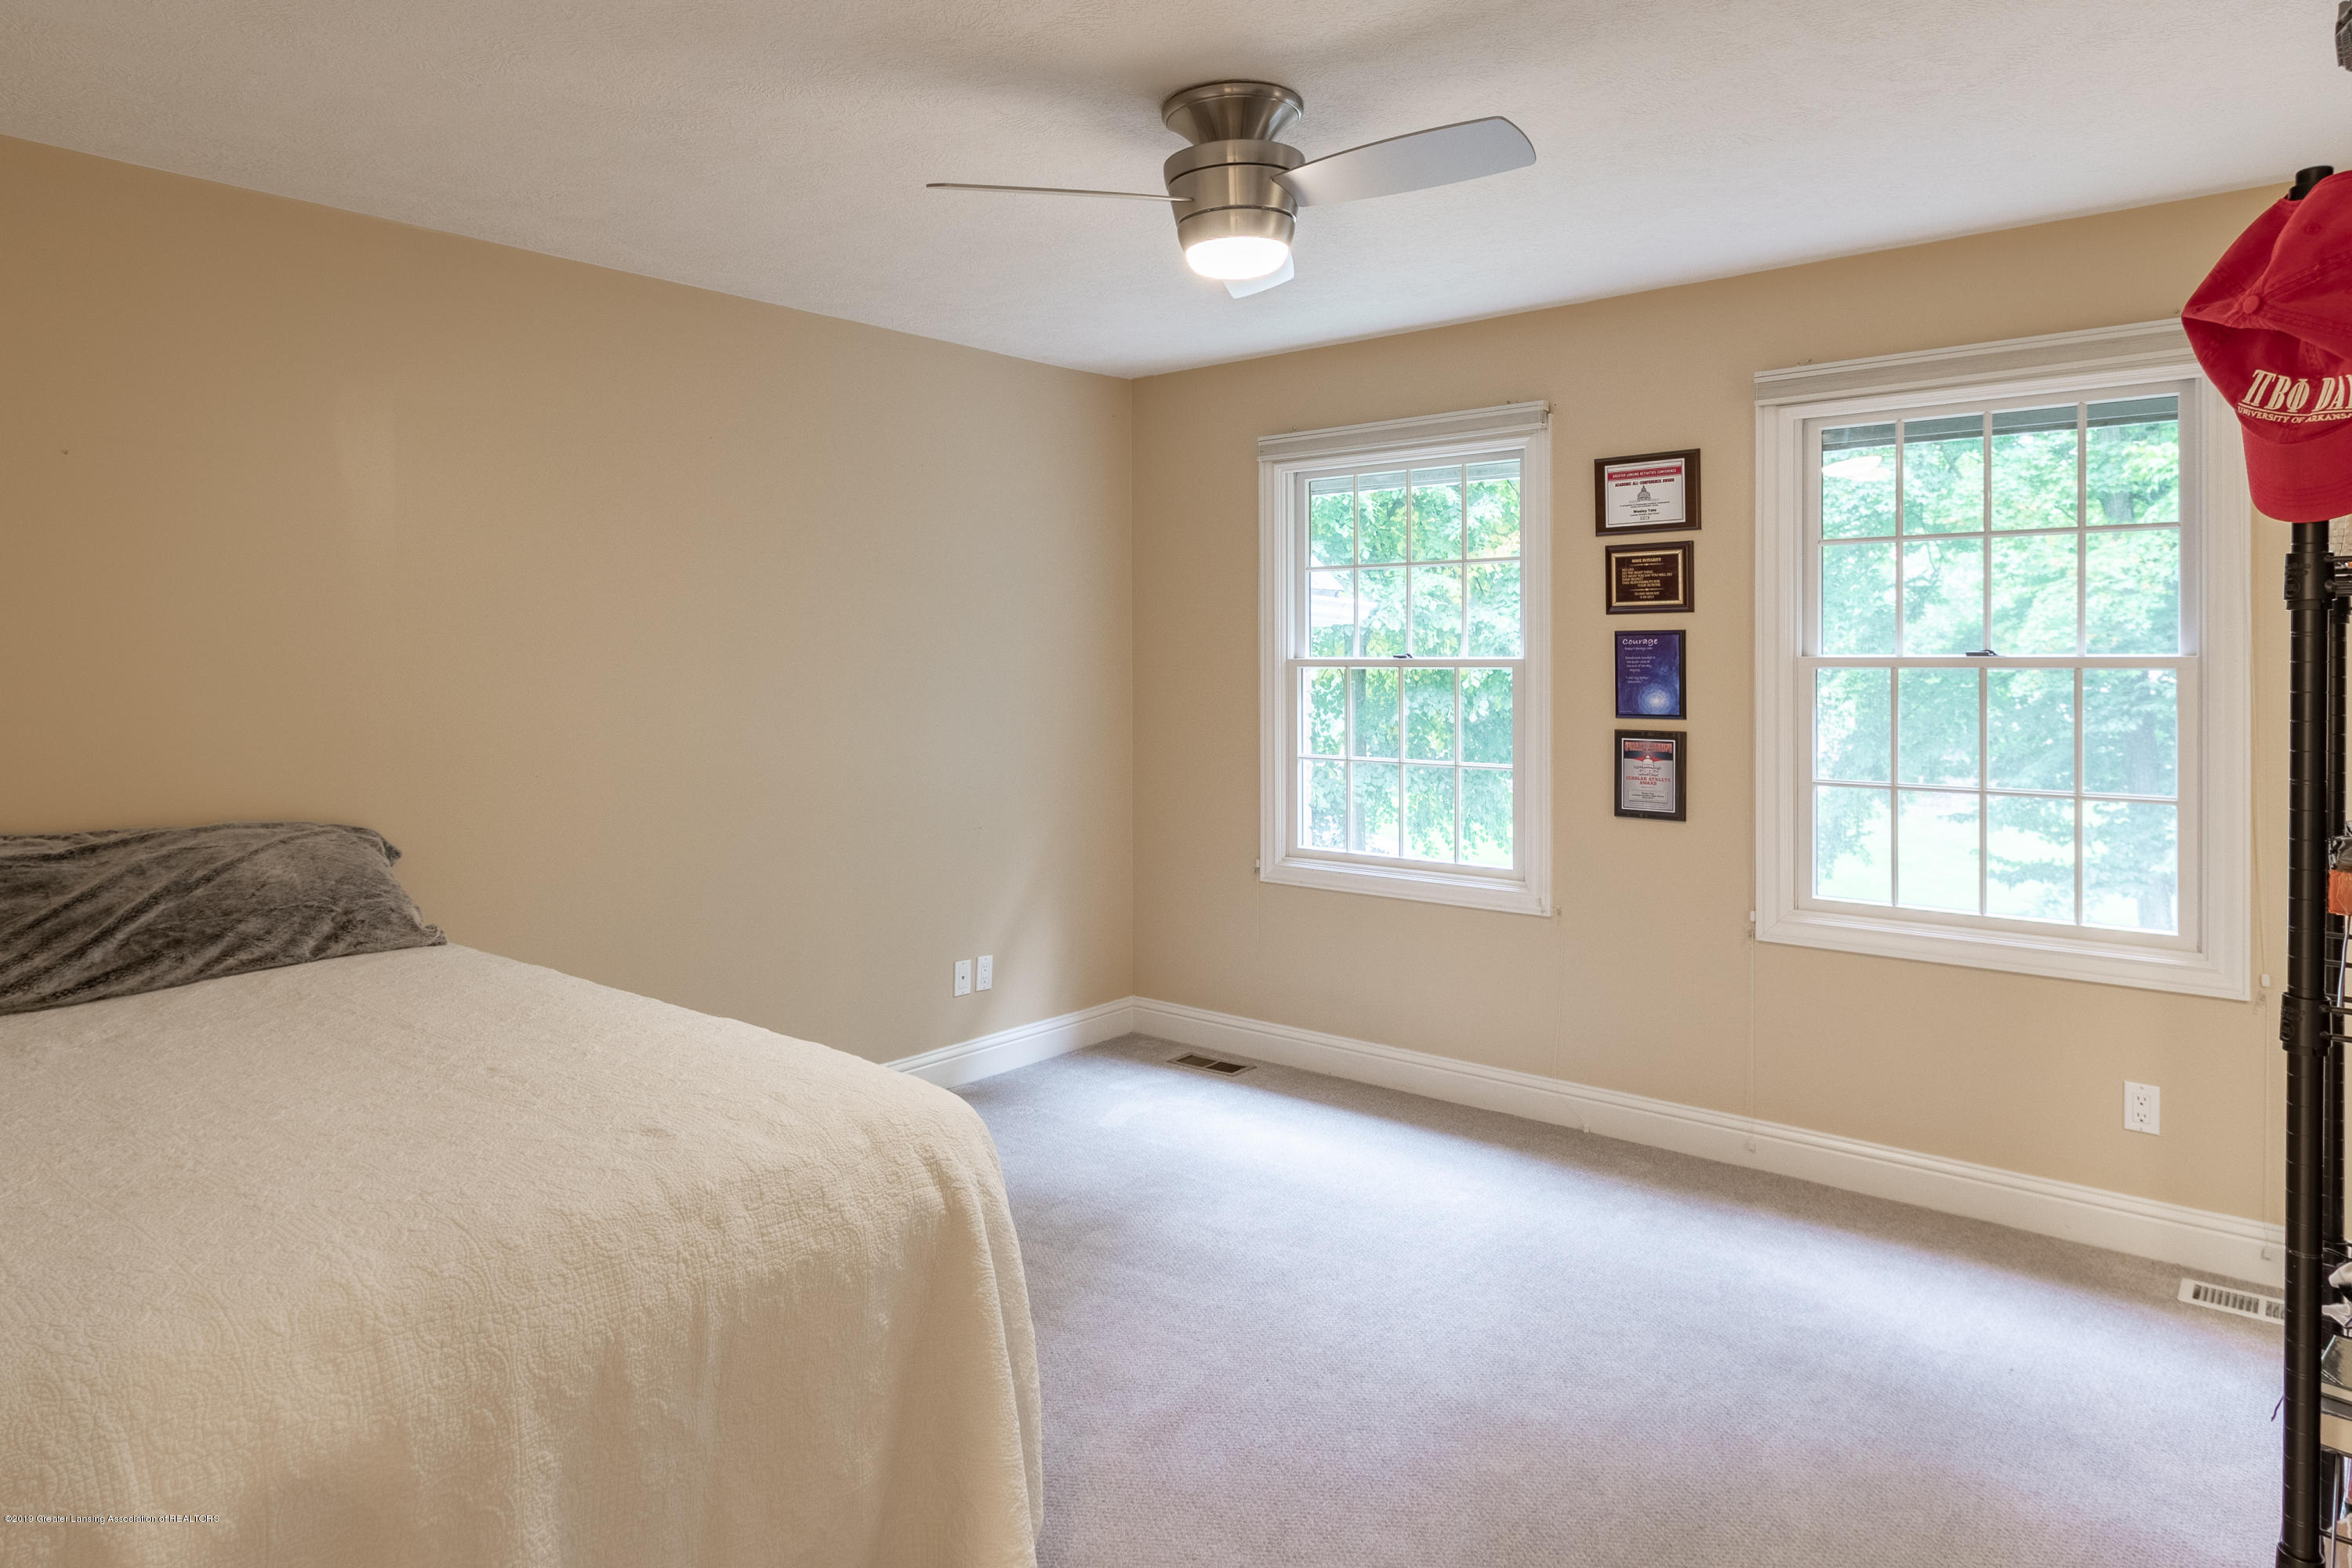 3700 Beech Tree Ln - BEDROOM 2 - 47